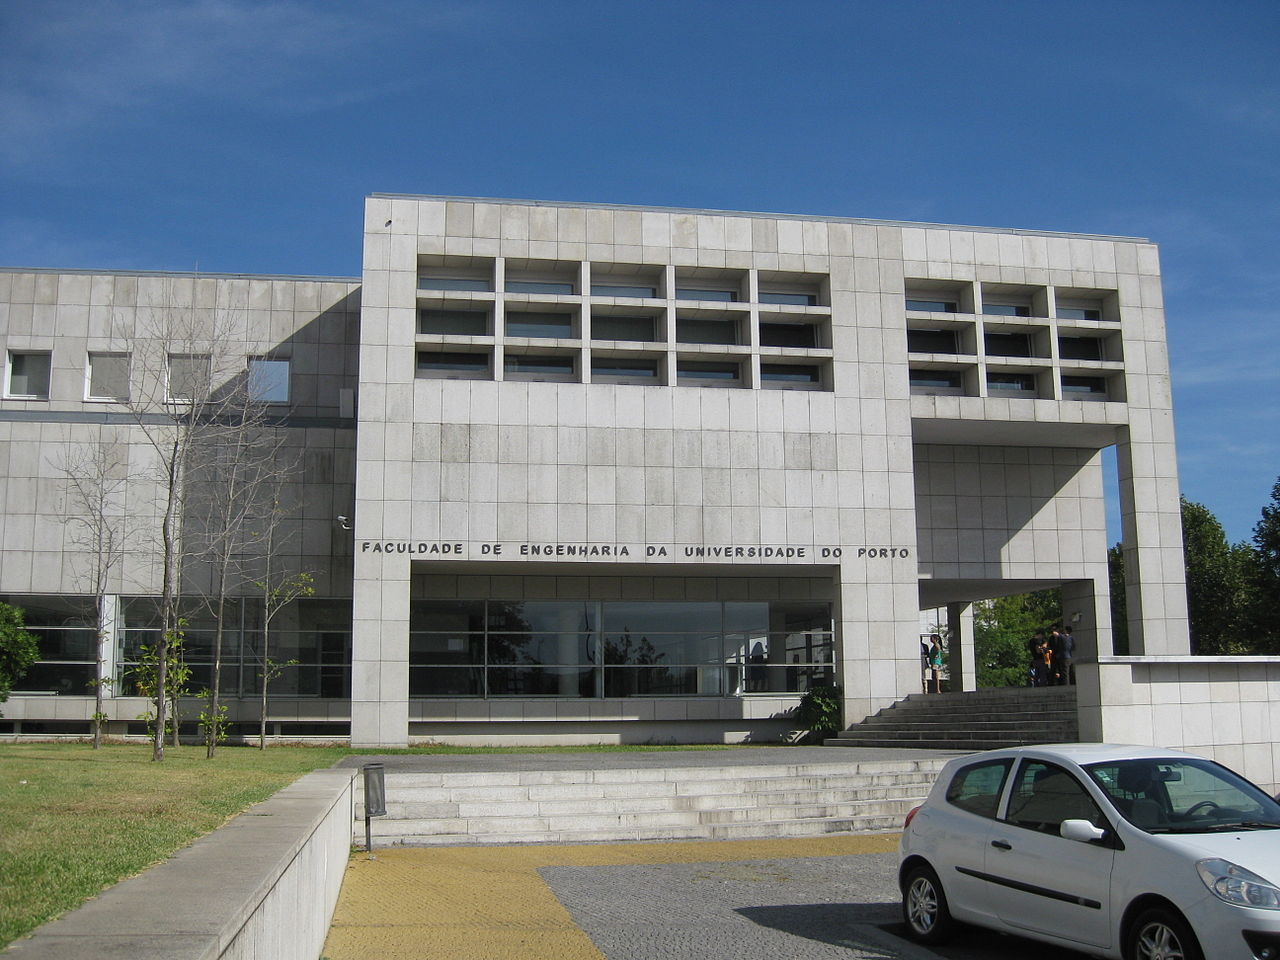 Main entrance of the Faculty of Engineering, University of Porto